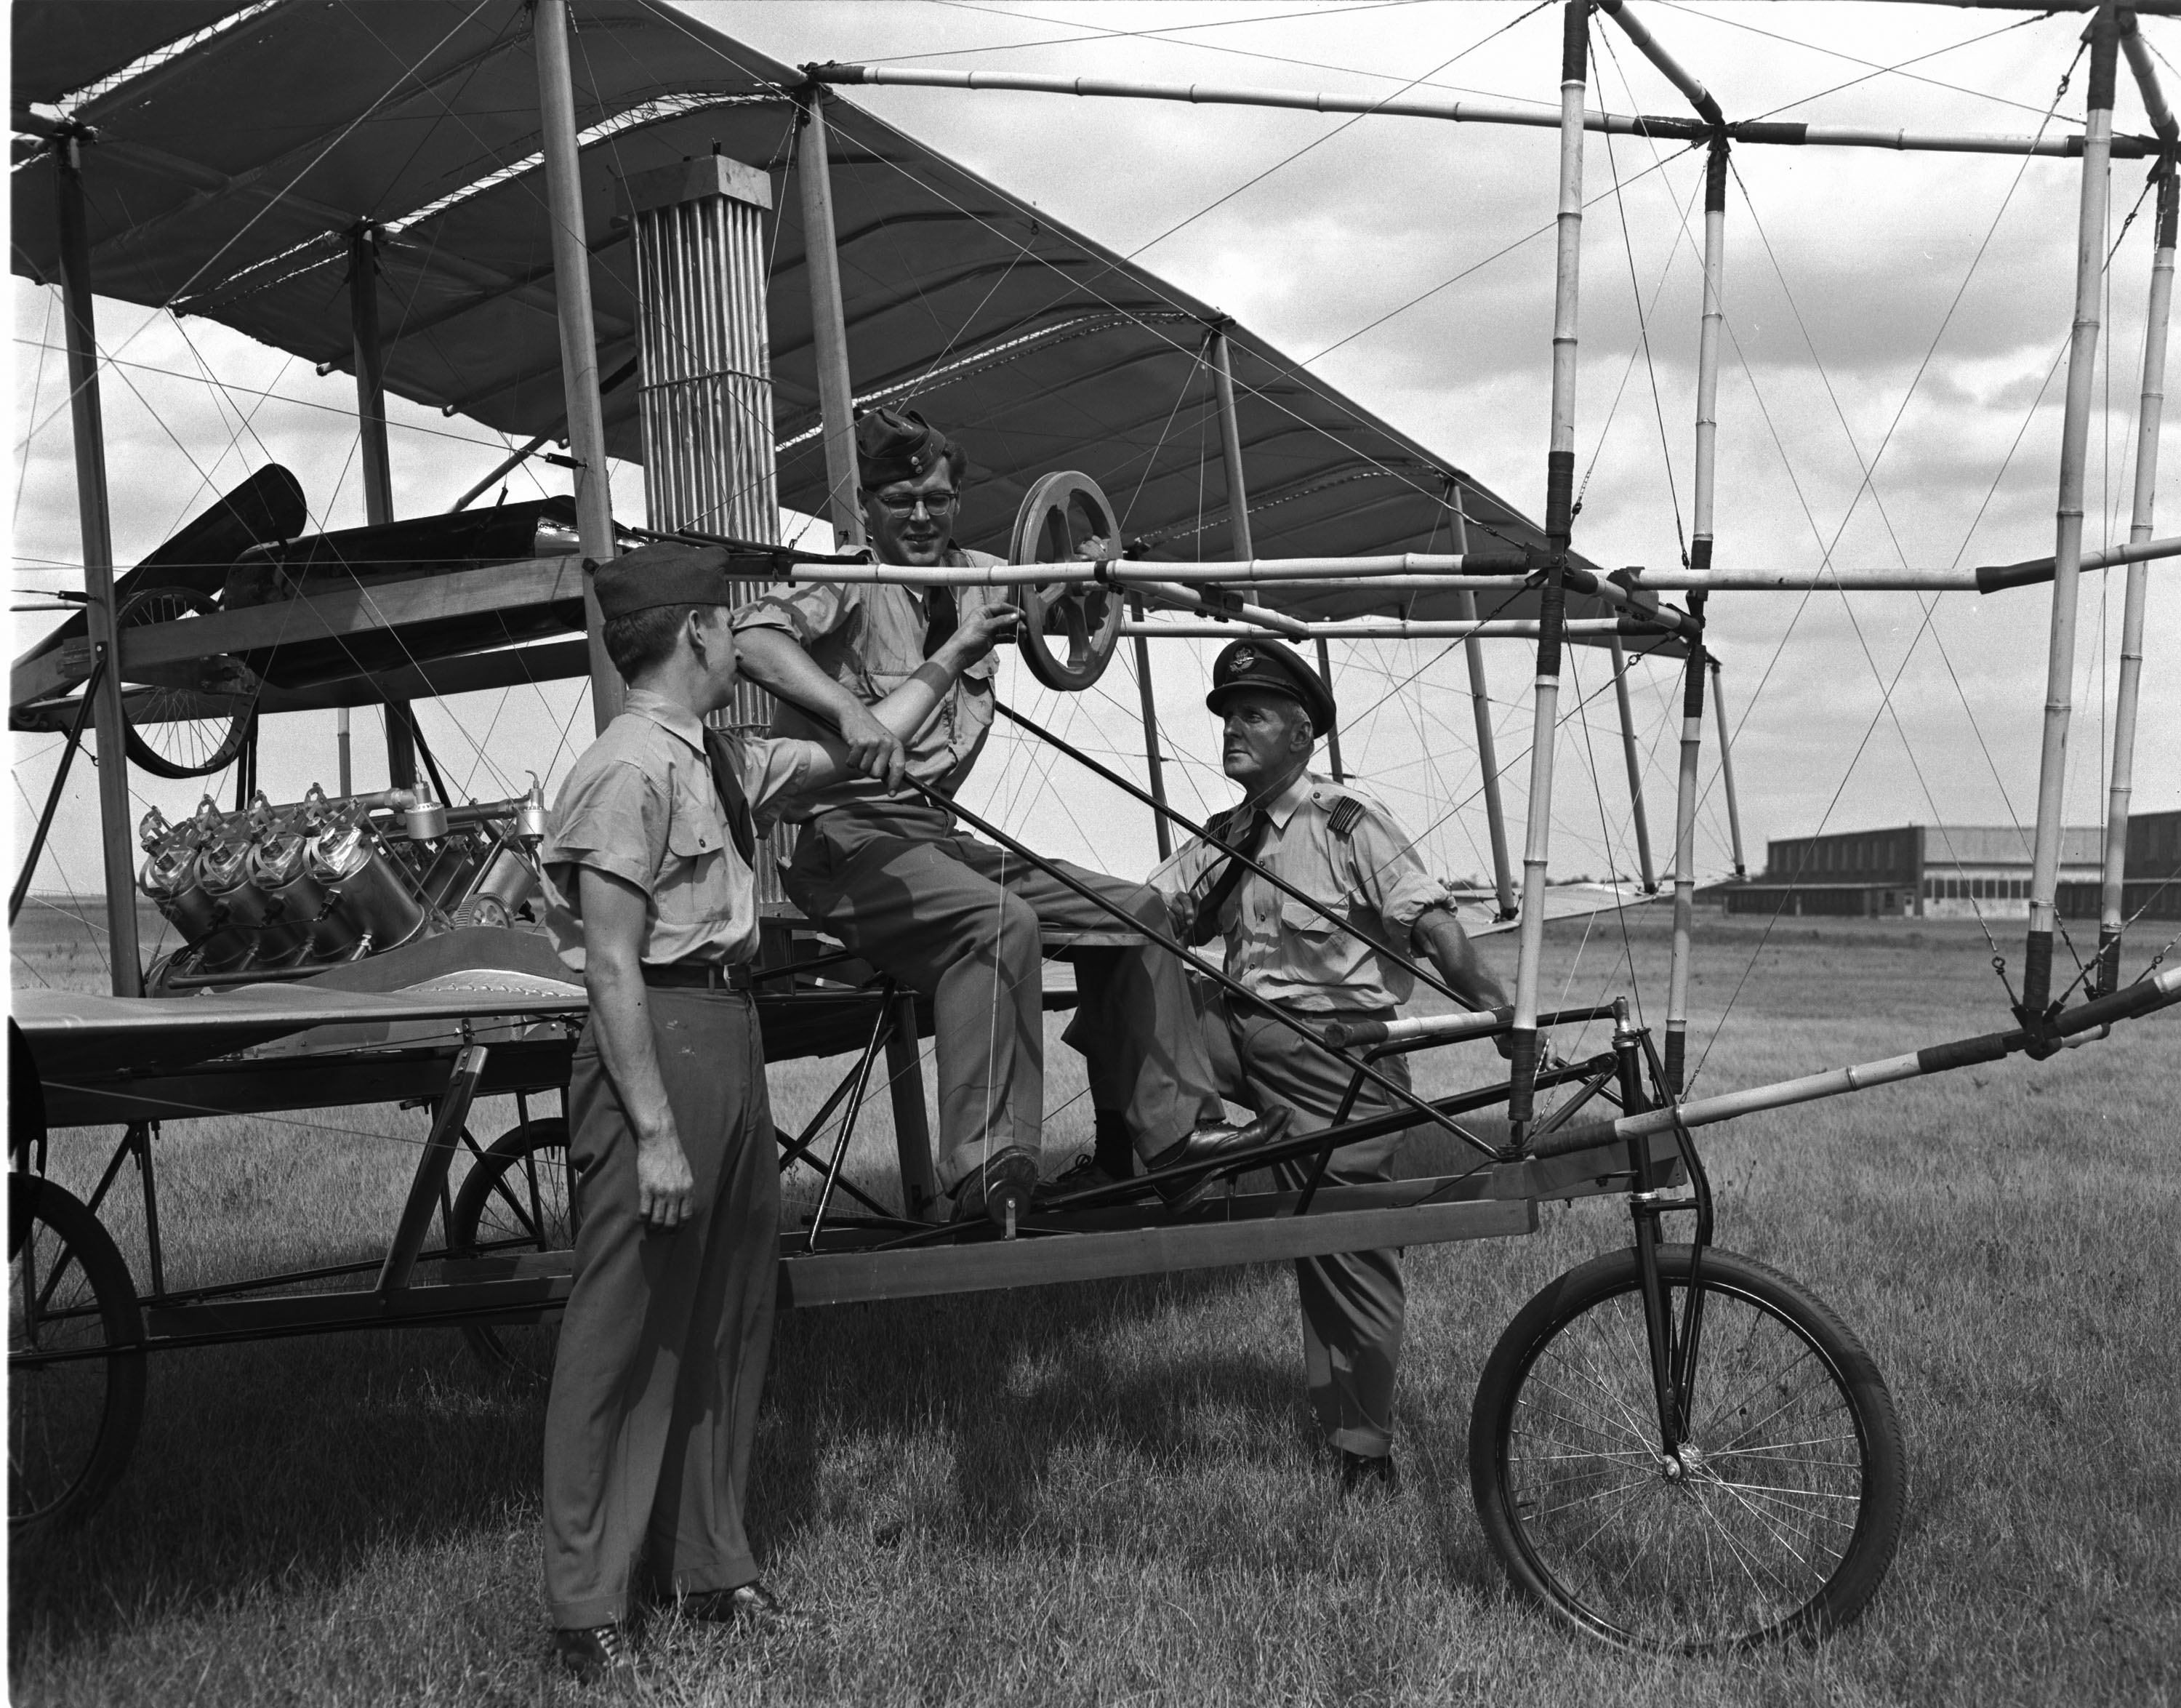 Leading Aircraftman Lionel McCaffery sits at the controls of a replica of the Silver Dart that was built to celebrate the 50th anniversary of the first airplane flight in Canada. Standing with the aircraft are Squadron Leader Roy Wood (right) and Leading Aircraftman Mickey Trimm. PHOTO: PL-95872, DND Archives